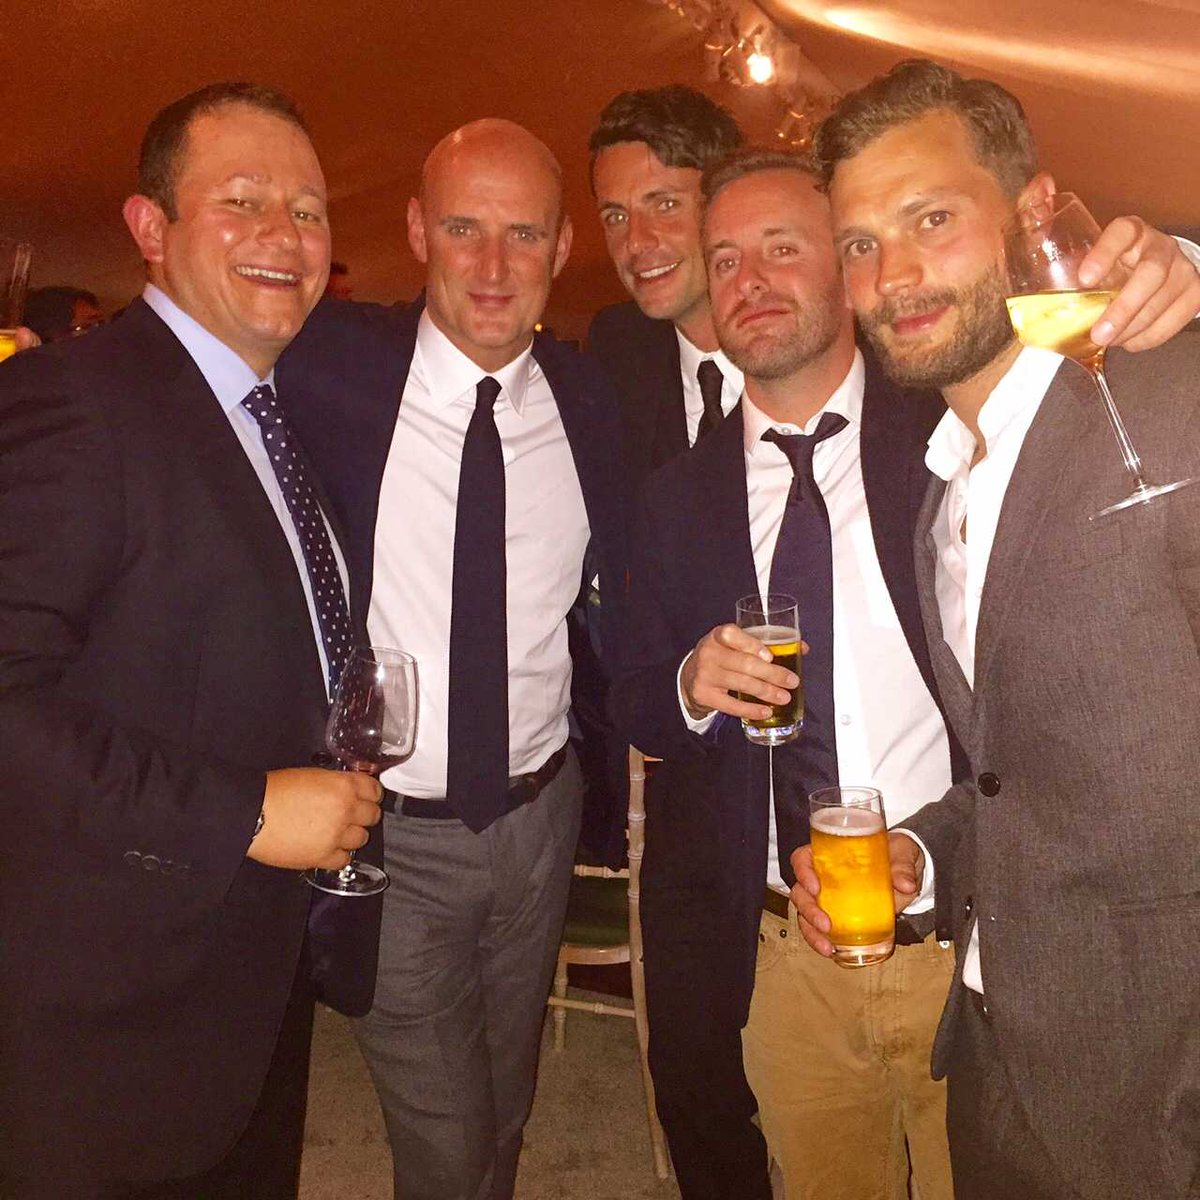 With Italian ref Pierluigi Collina, Matthew Goode, unnamed ginger, and @JamieDornan. @MCSaatchiSteveM @BrianODriscoll http://t.co/9j7PHJVlQB